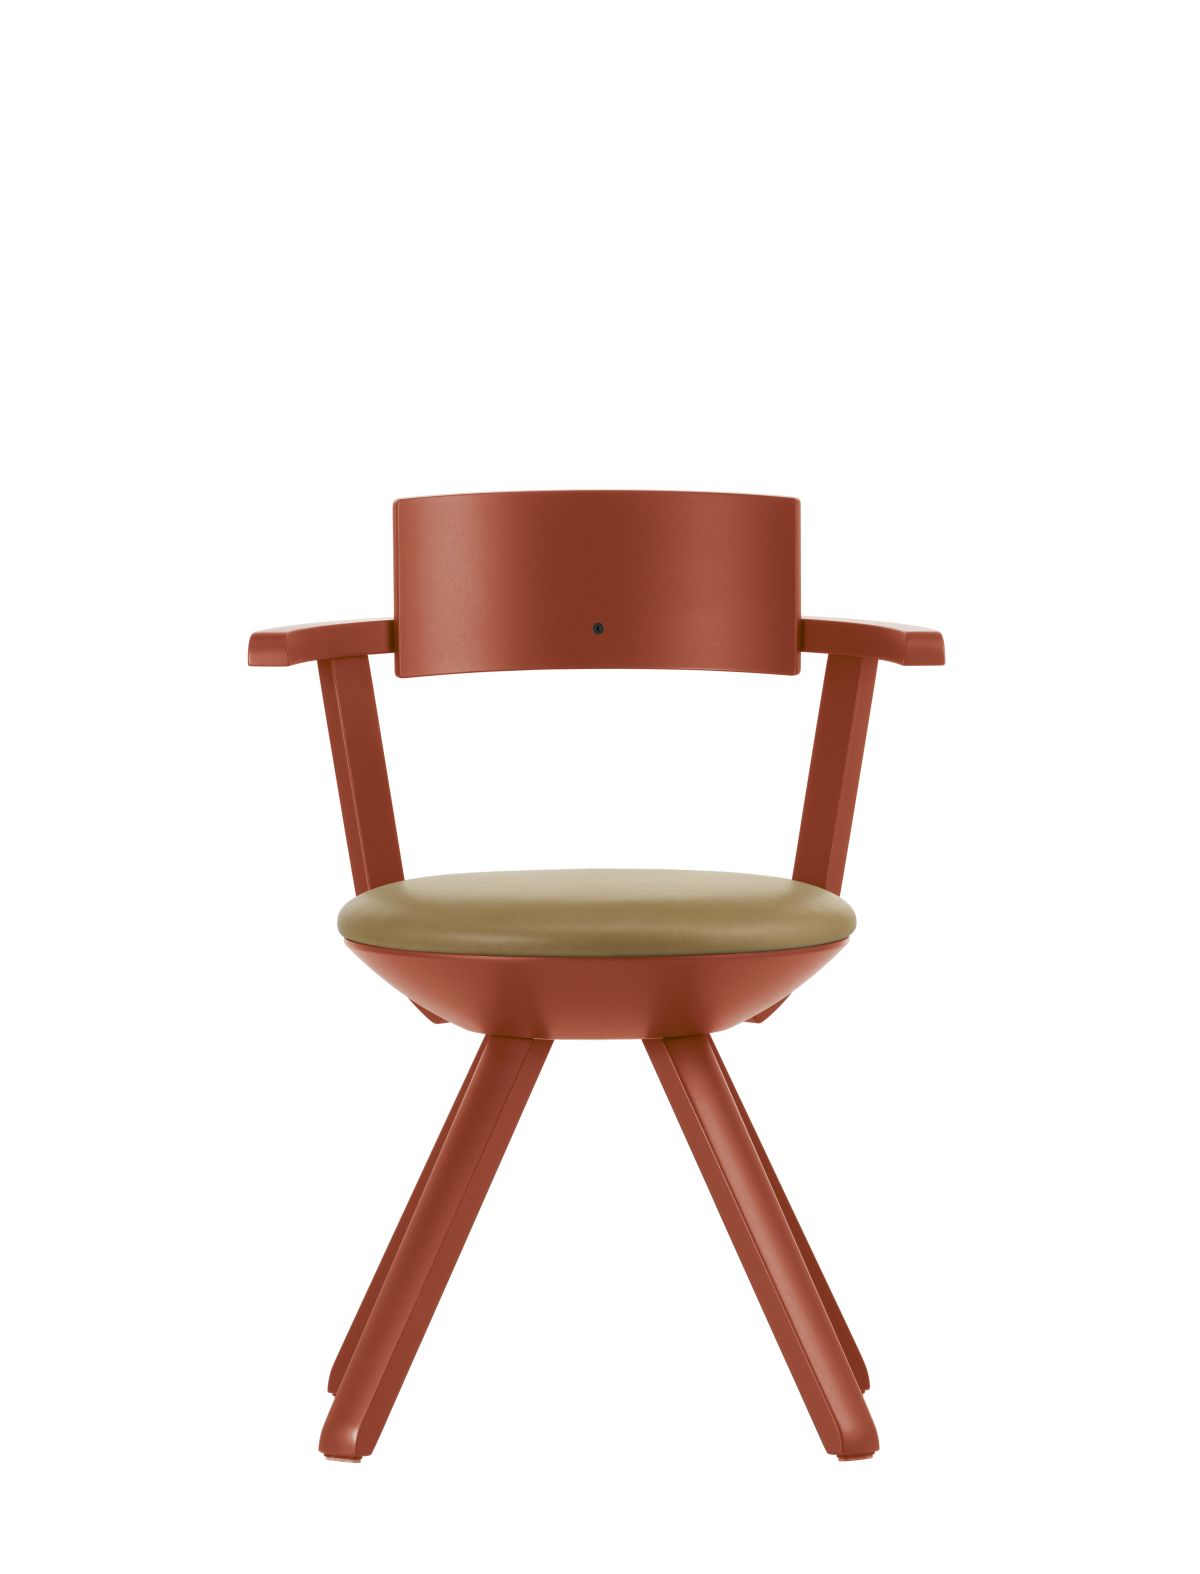 Rival-Chair-Kg002-Red-Lacquer-Caramel-Leather-Upholstery